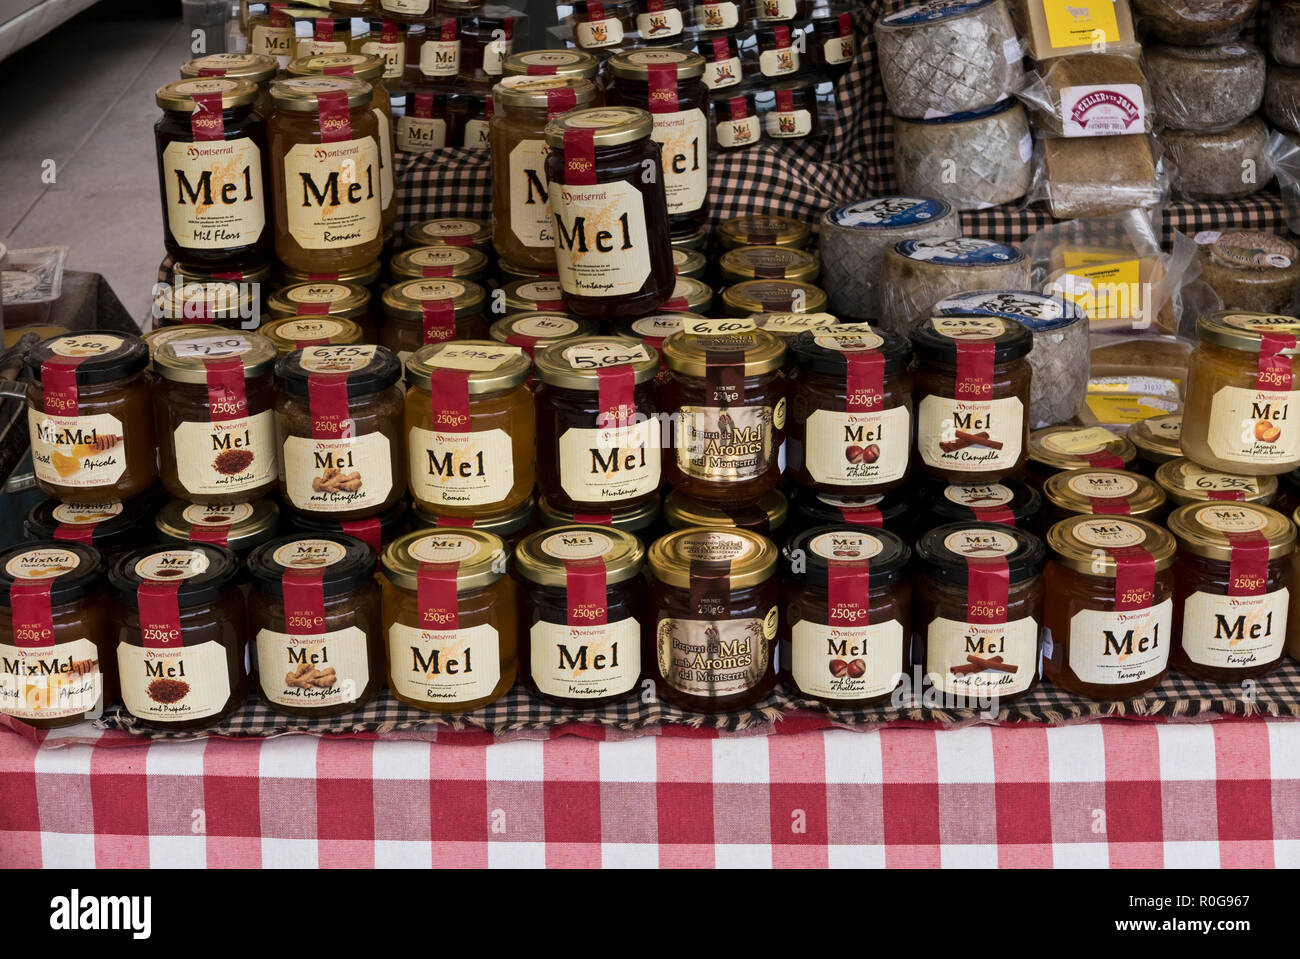 Local Produce on sale outside the Monastery walls along the street in Montserrat, Barcelona, Spain Stock Photo